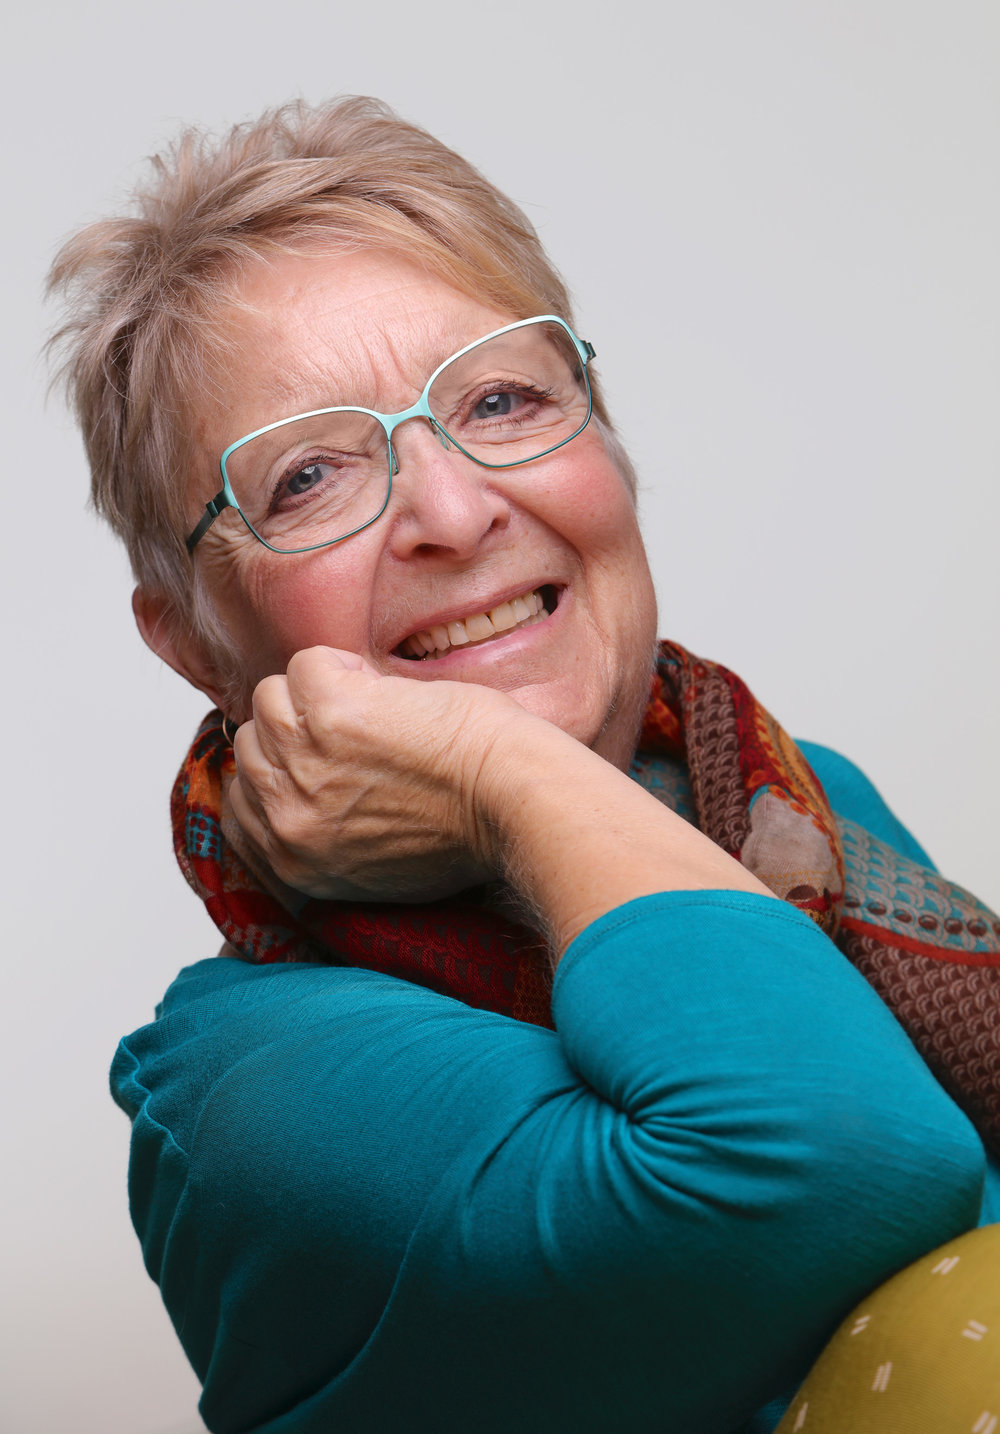 meet felice - Felice Rhiannon brings seven+ decades of life experience to the present moment. Her work in the world has been varied, most often guided by her heart, though sometimes by economic necessity! She has been privileged to be a yoga therapist, specialising in teaching yoga, in all its aspects, to people living with cancer, heart disease and muscular-skeletal challenges. Upon leaving that work, Felice was ordained as a OneSpirit interfaith minister, serving elders and the LGBT community. She is also a Veriditas-Certified Labyrinth Walk Facilitator. Felice most recently trained as a workshop leader with Sage-ing International and presents workshops in the UK and world-wide.